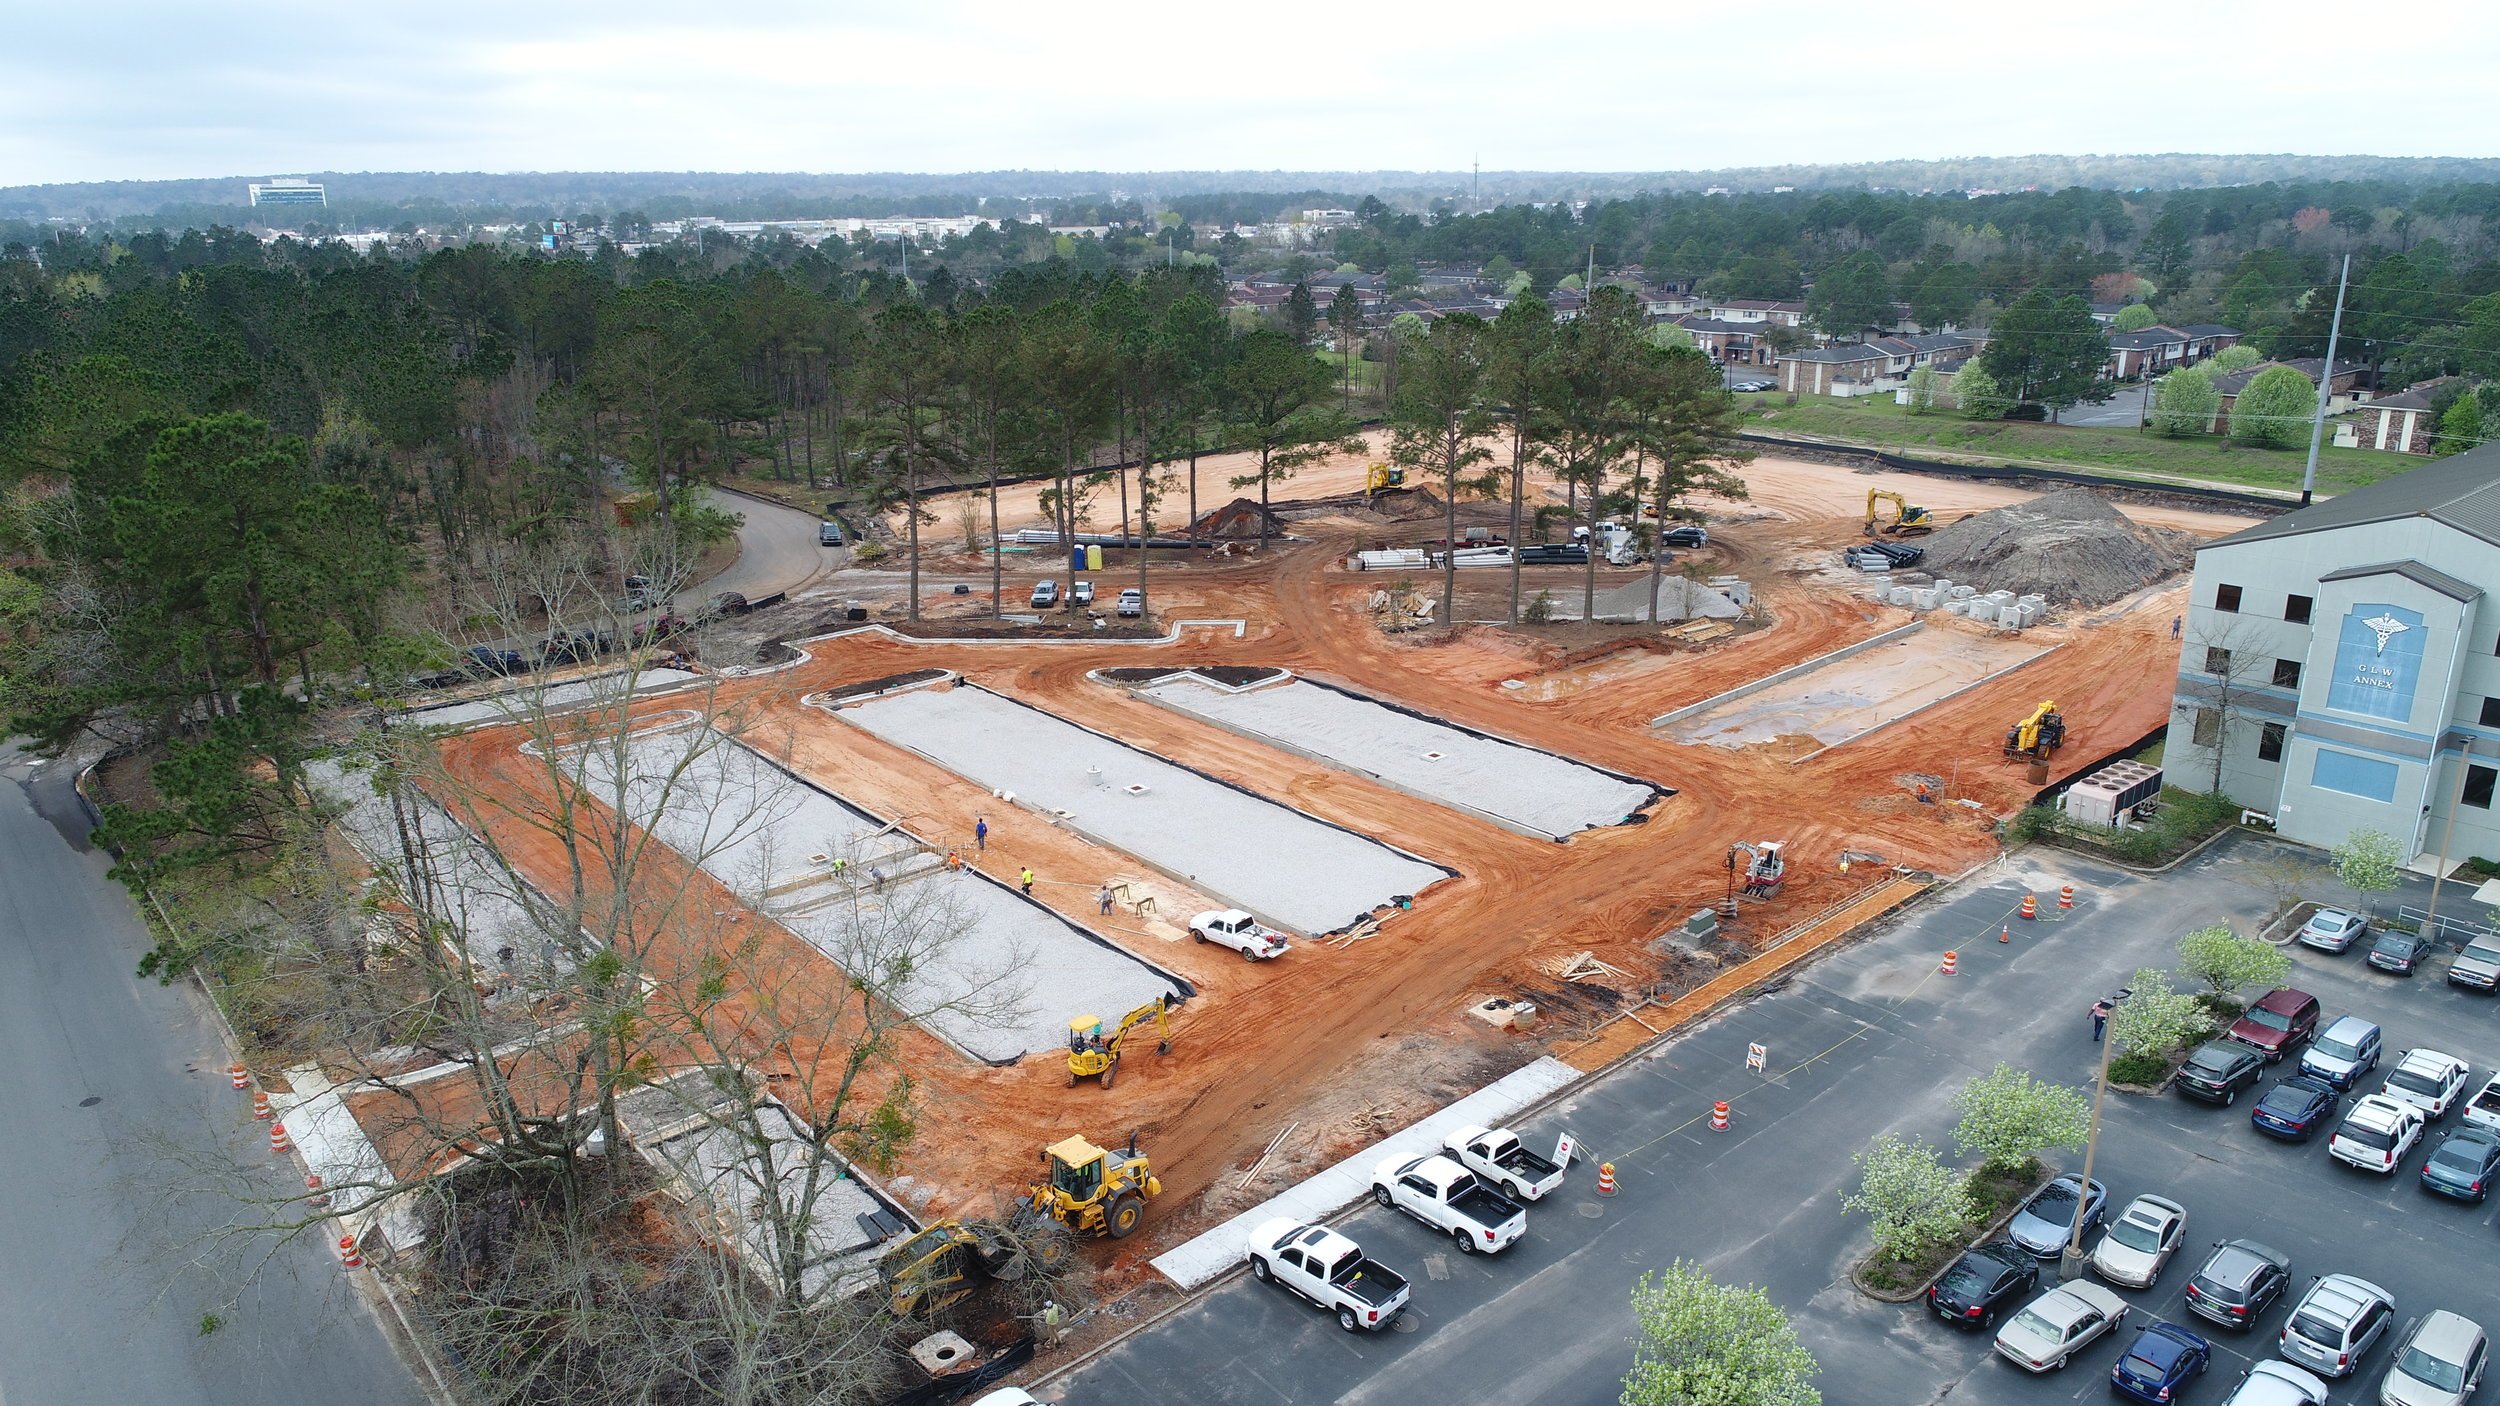 Springhill Medical Center - Delaney Employee Parking Lot  Utilizing Green Infrastructure Solutions